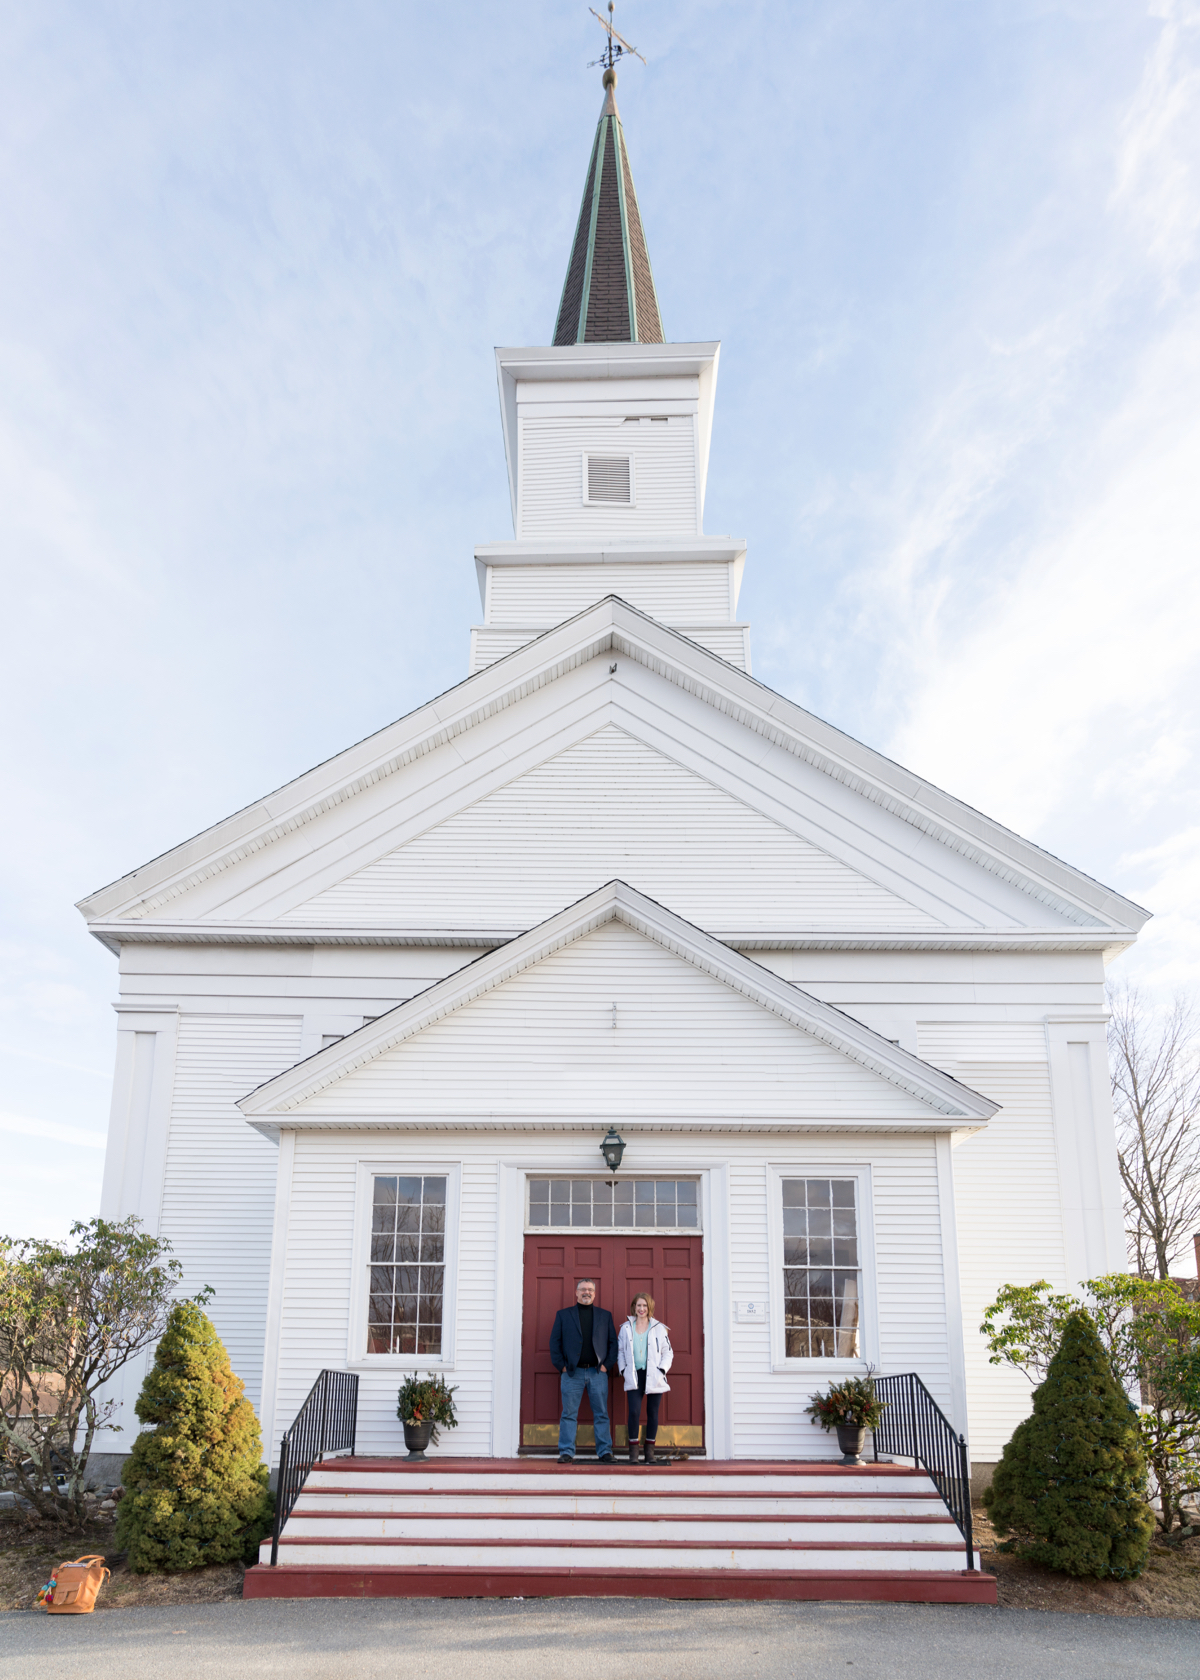 We are located in Sanctuary Hall: a former church in downtown Maynard -